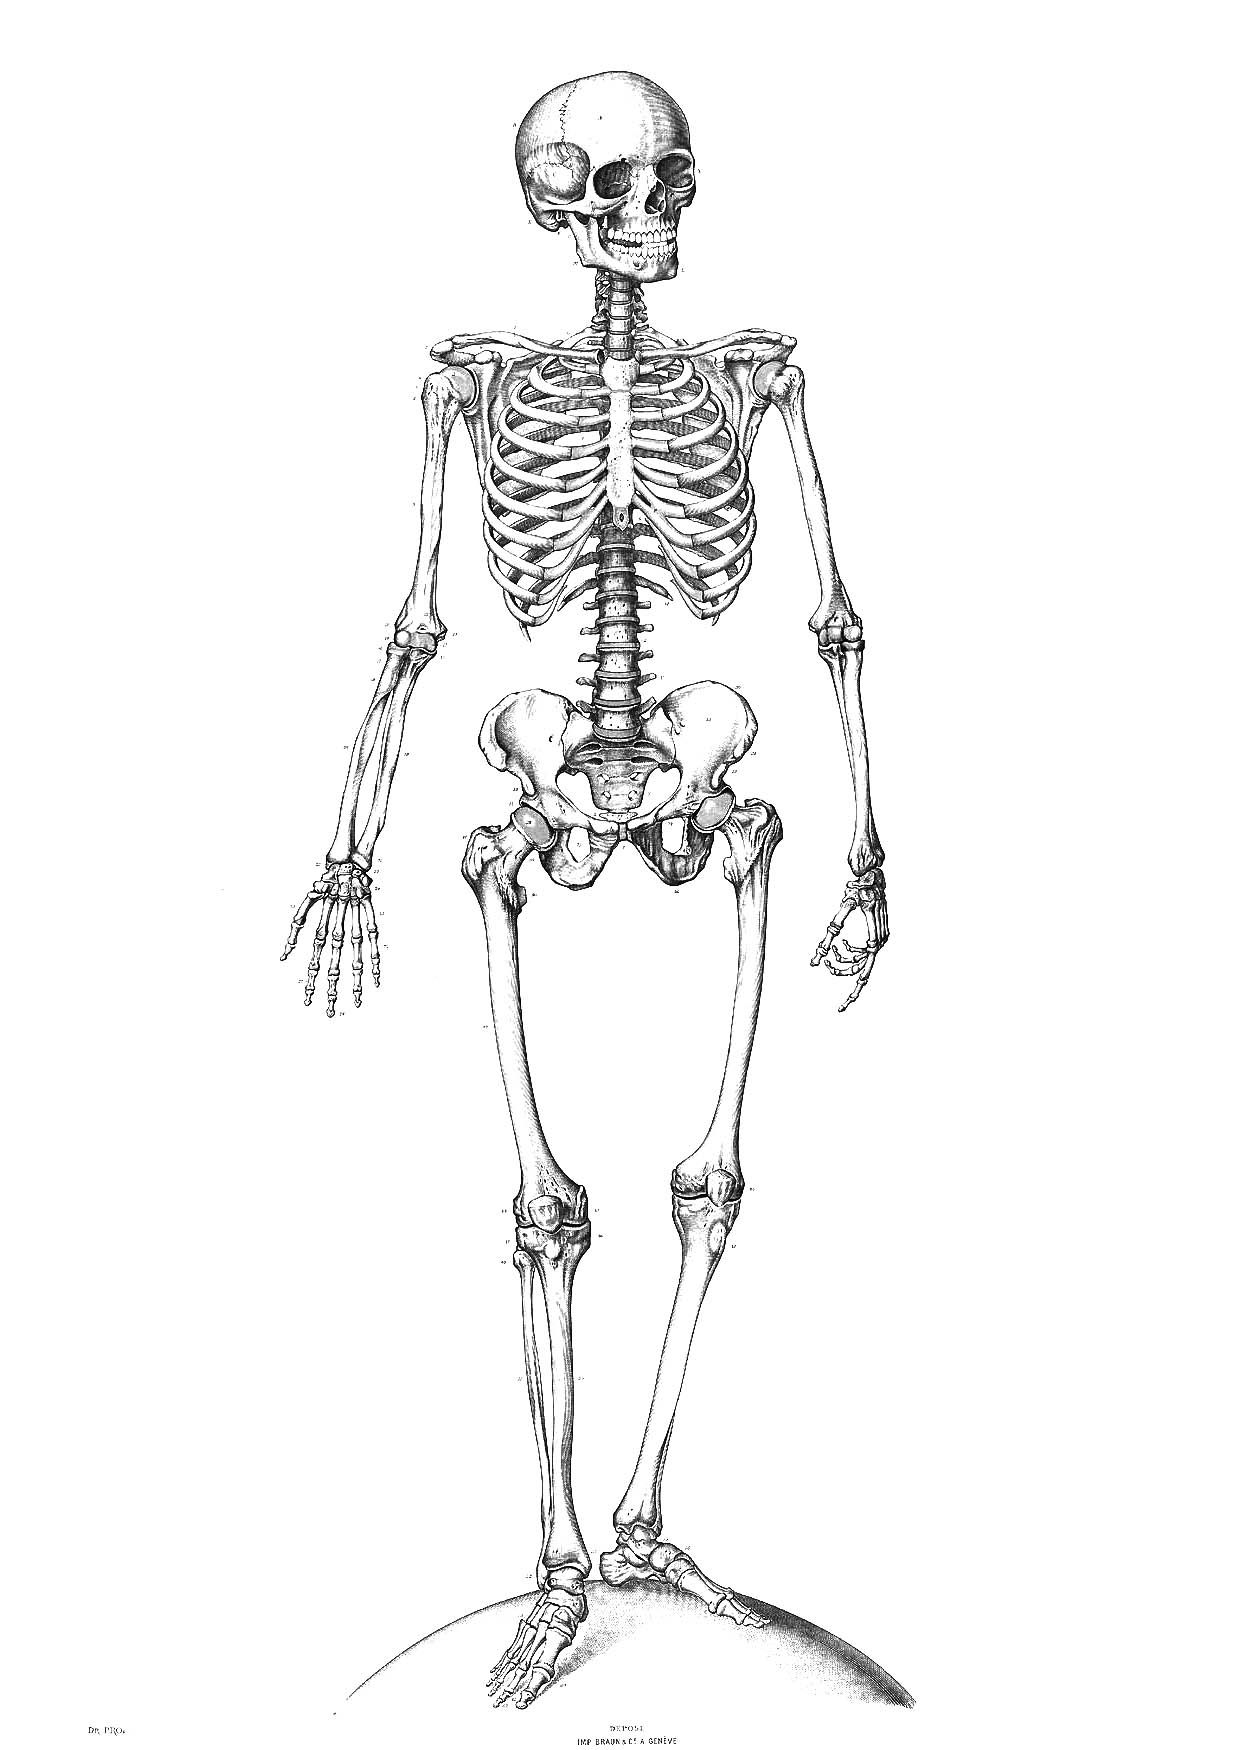 Free Printable Skeleton Coloring Pages For Kids   Classical - Free Printable Skeleton Coloring Pages